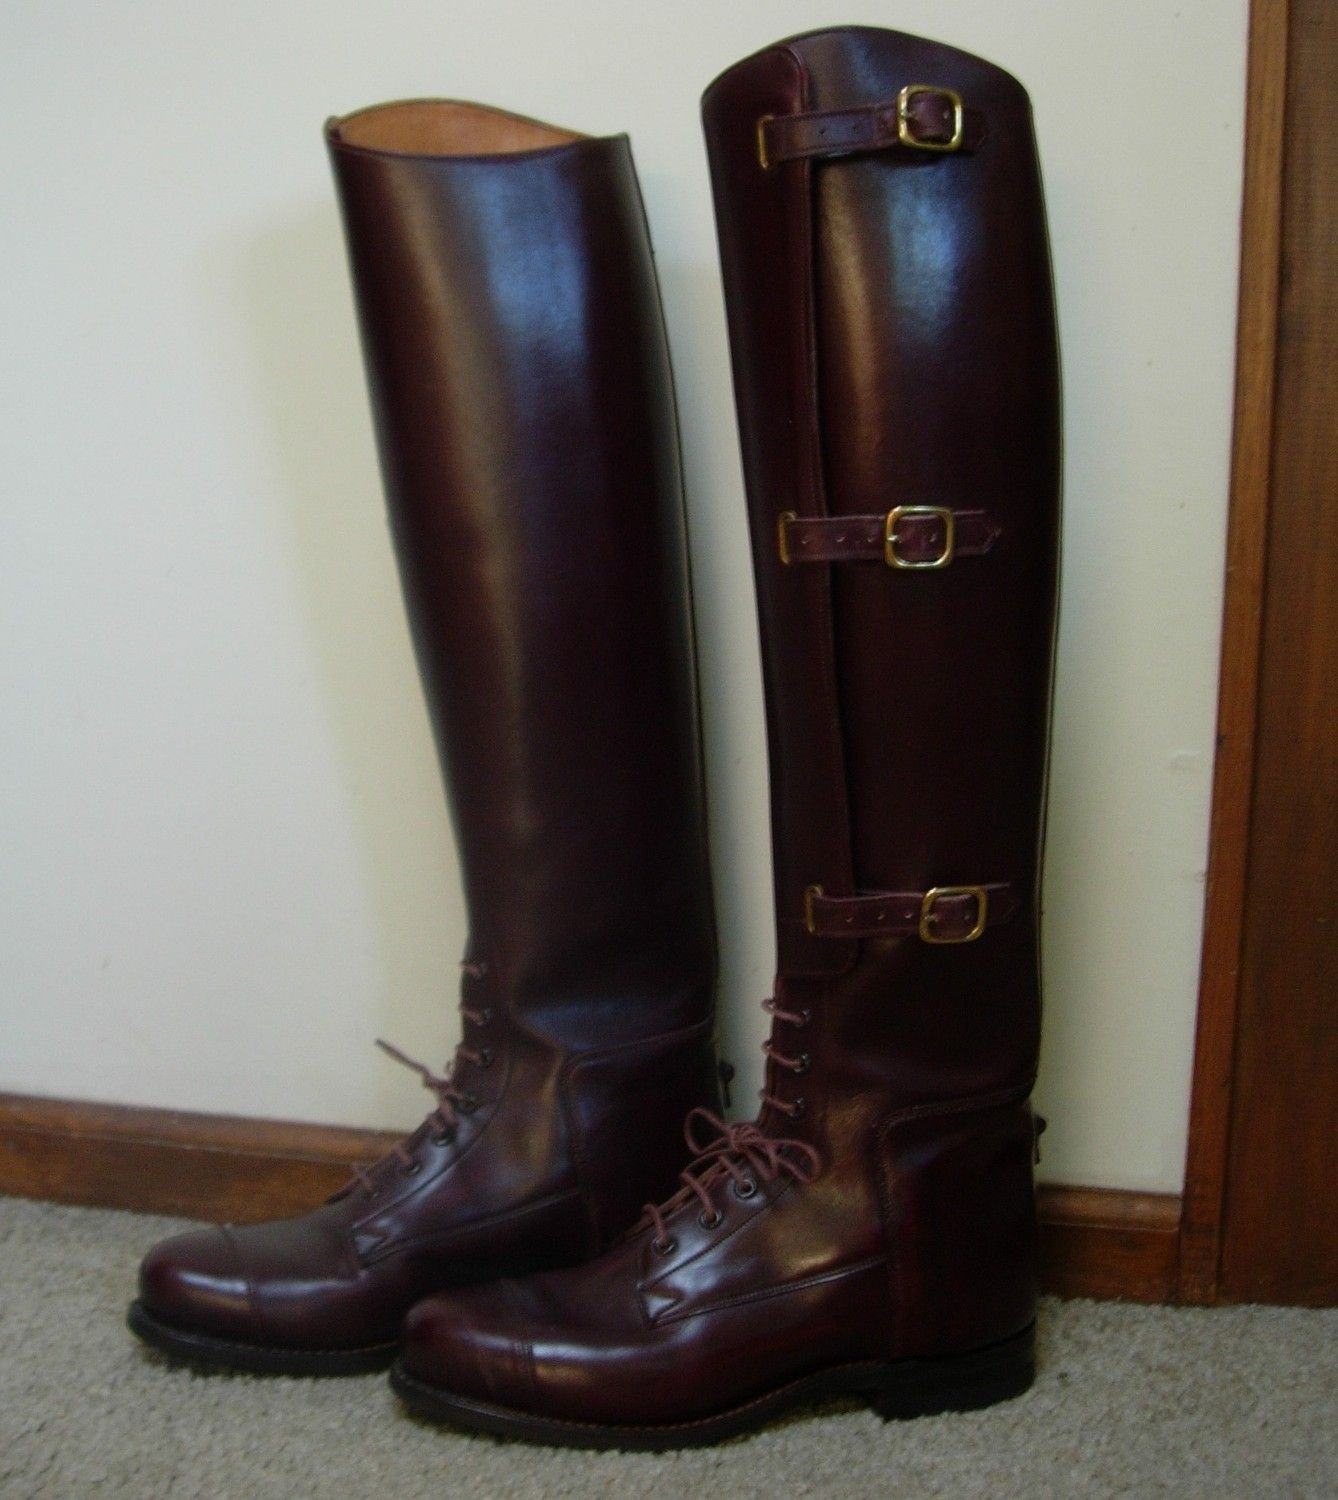 Boote Dehner Riding BootsShoes ;d Custom b7IYf6yvg